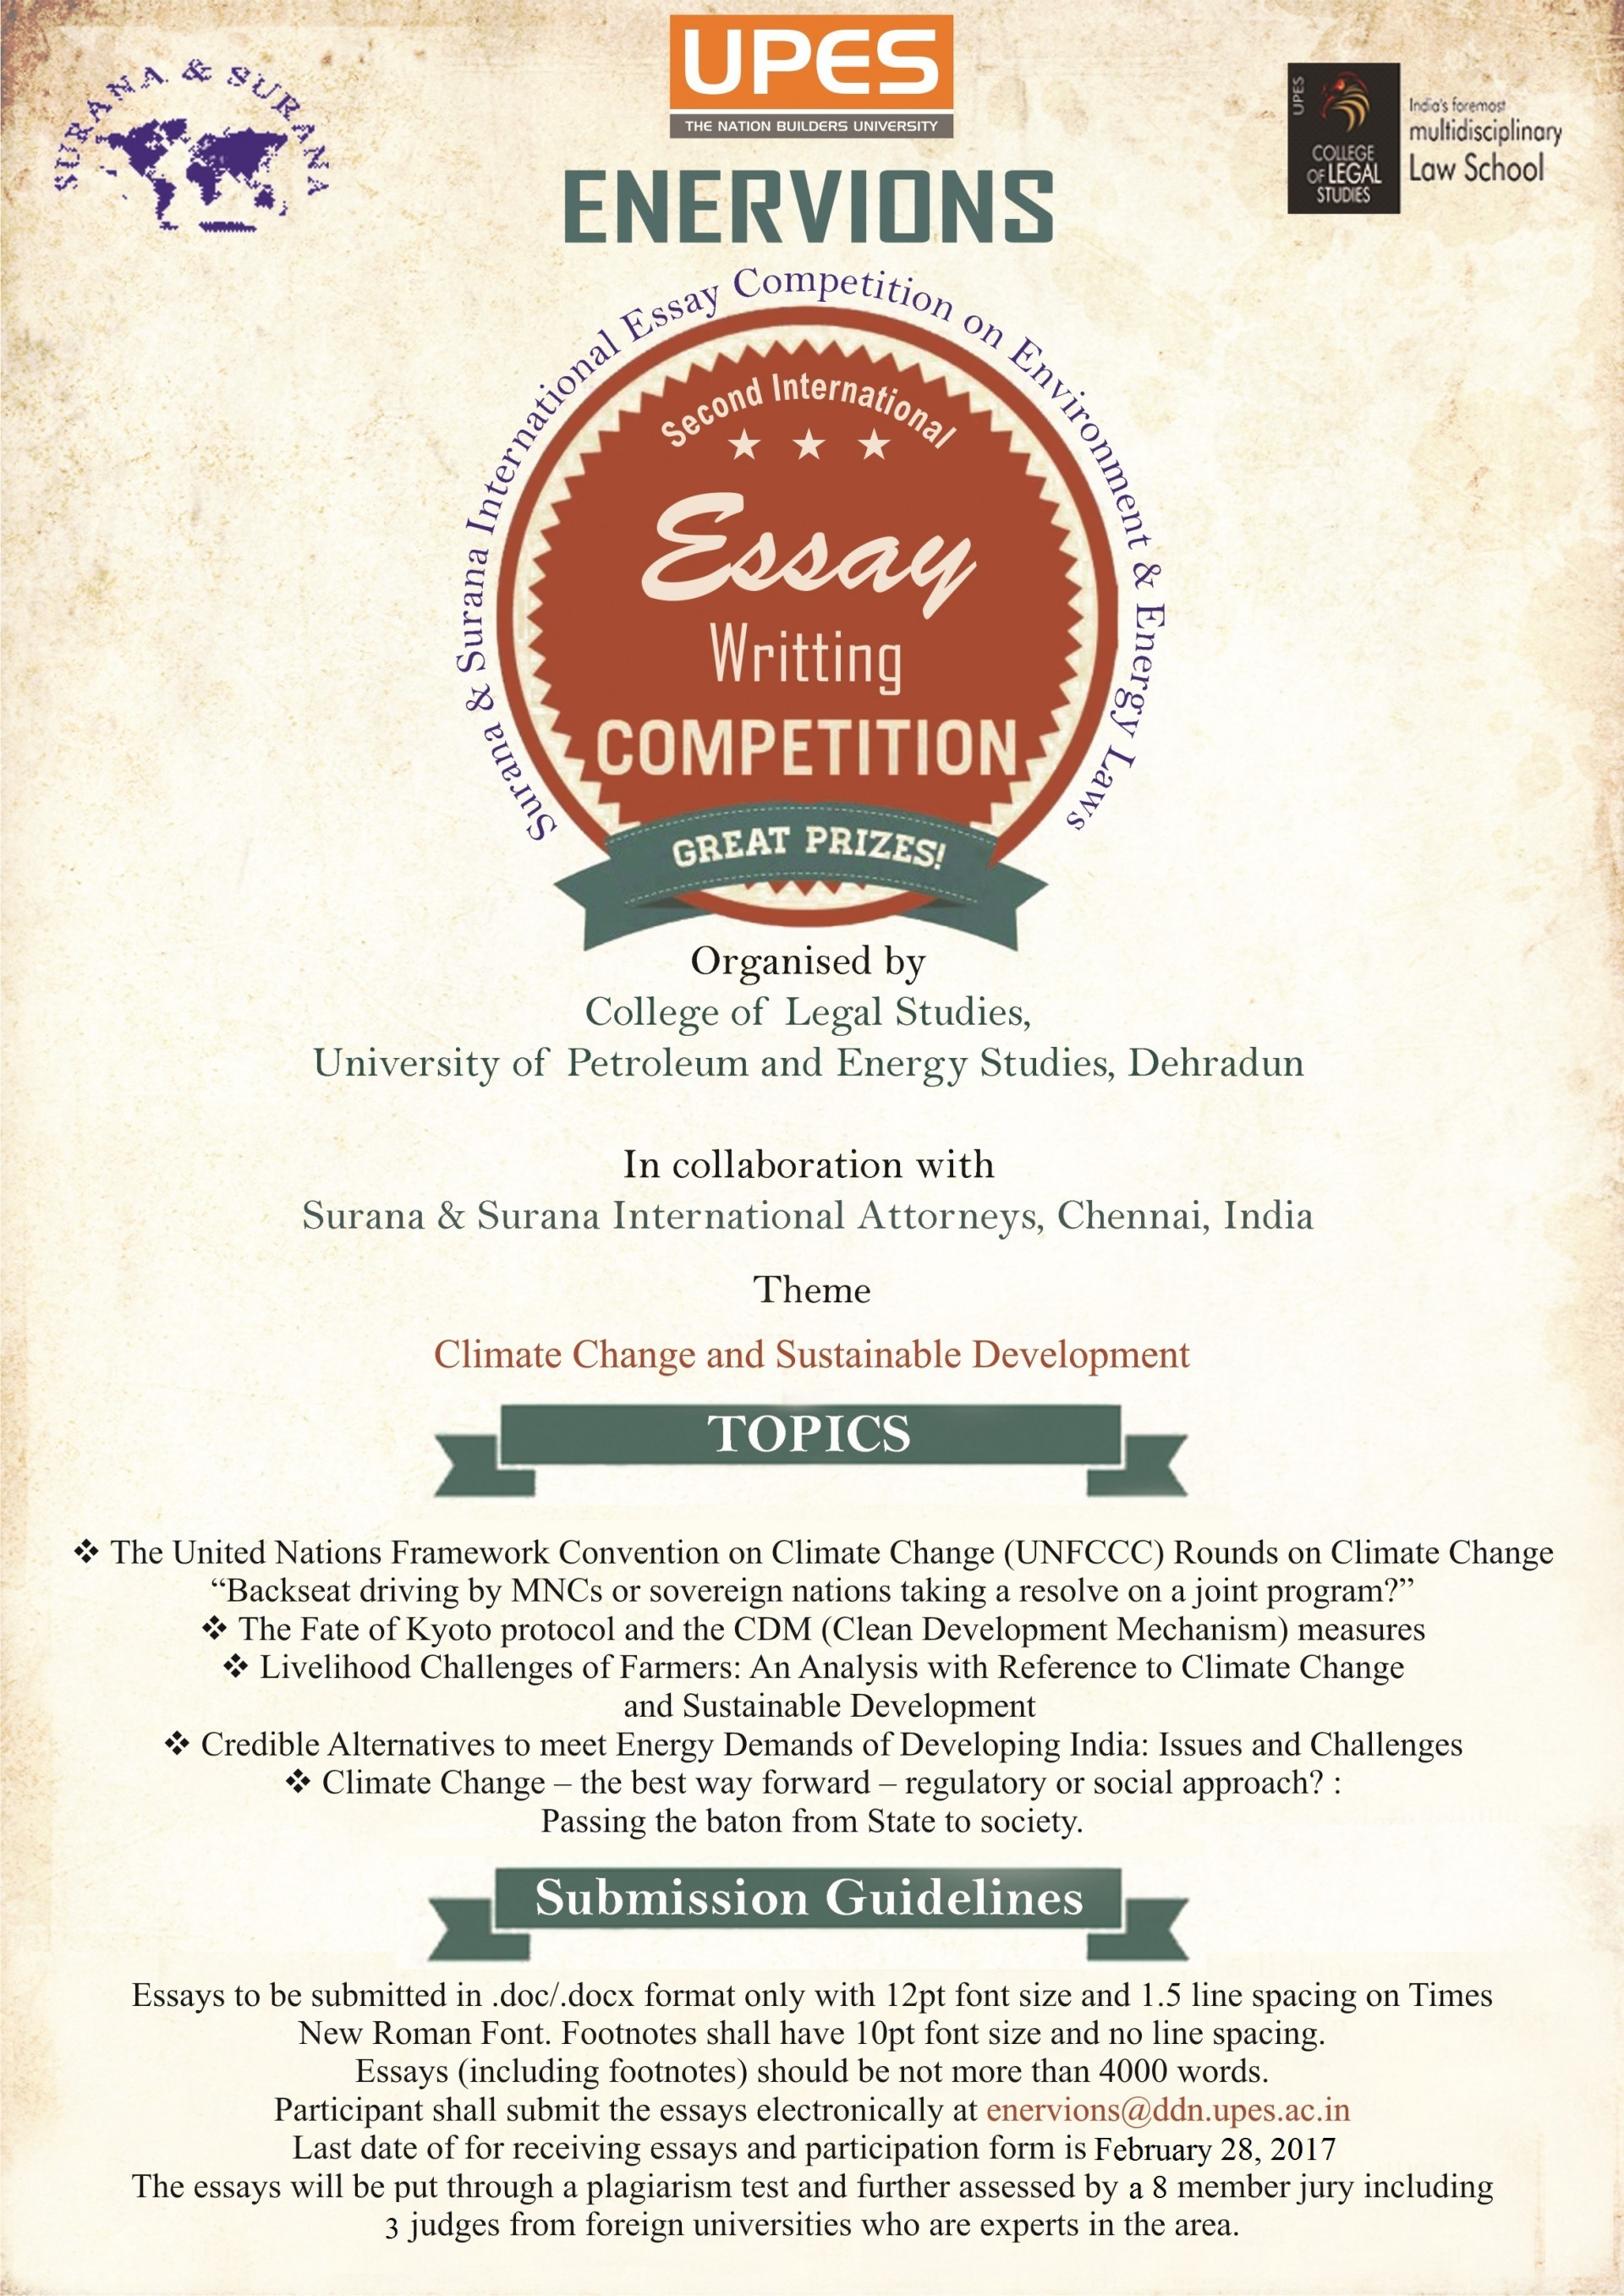 011 Essay Example Writing Incredible Contest International Competitions For High School Students Rules By Essayhub 1920